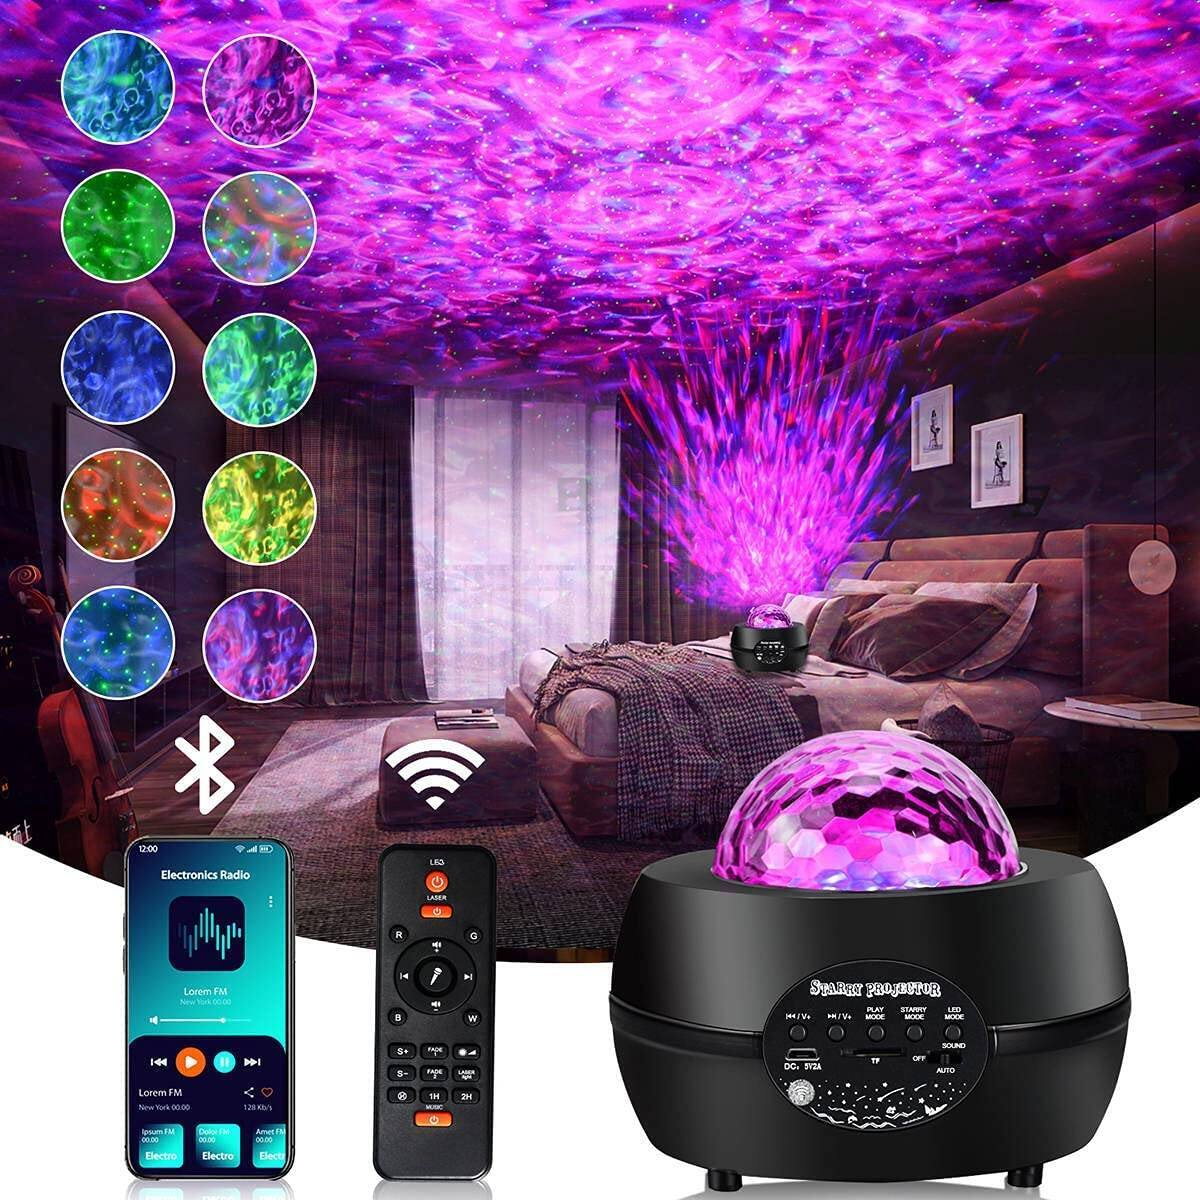 Romwish Remote Control Star Projector Night Light with Bluetooth Speaker - $13.99 + Free Shipping